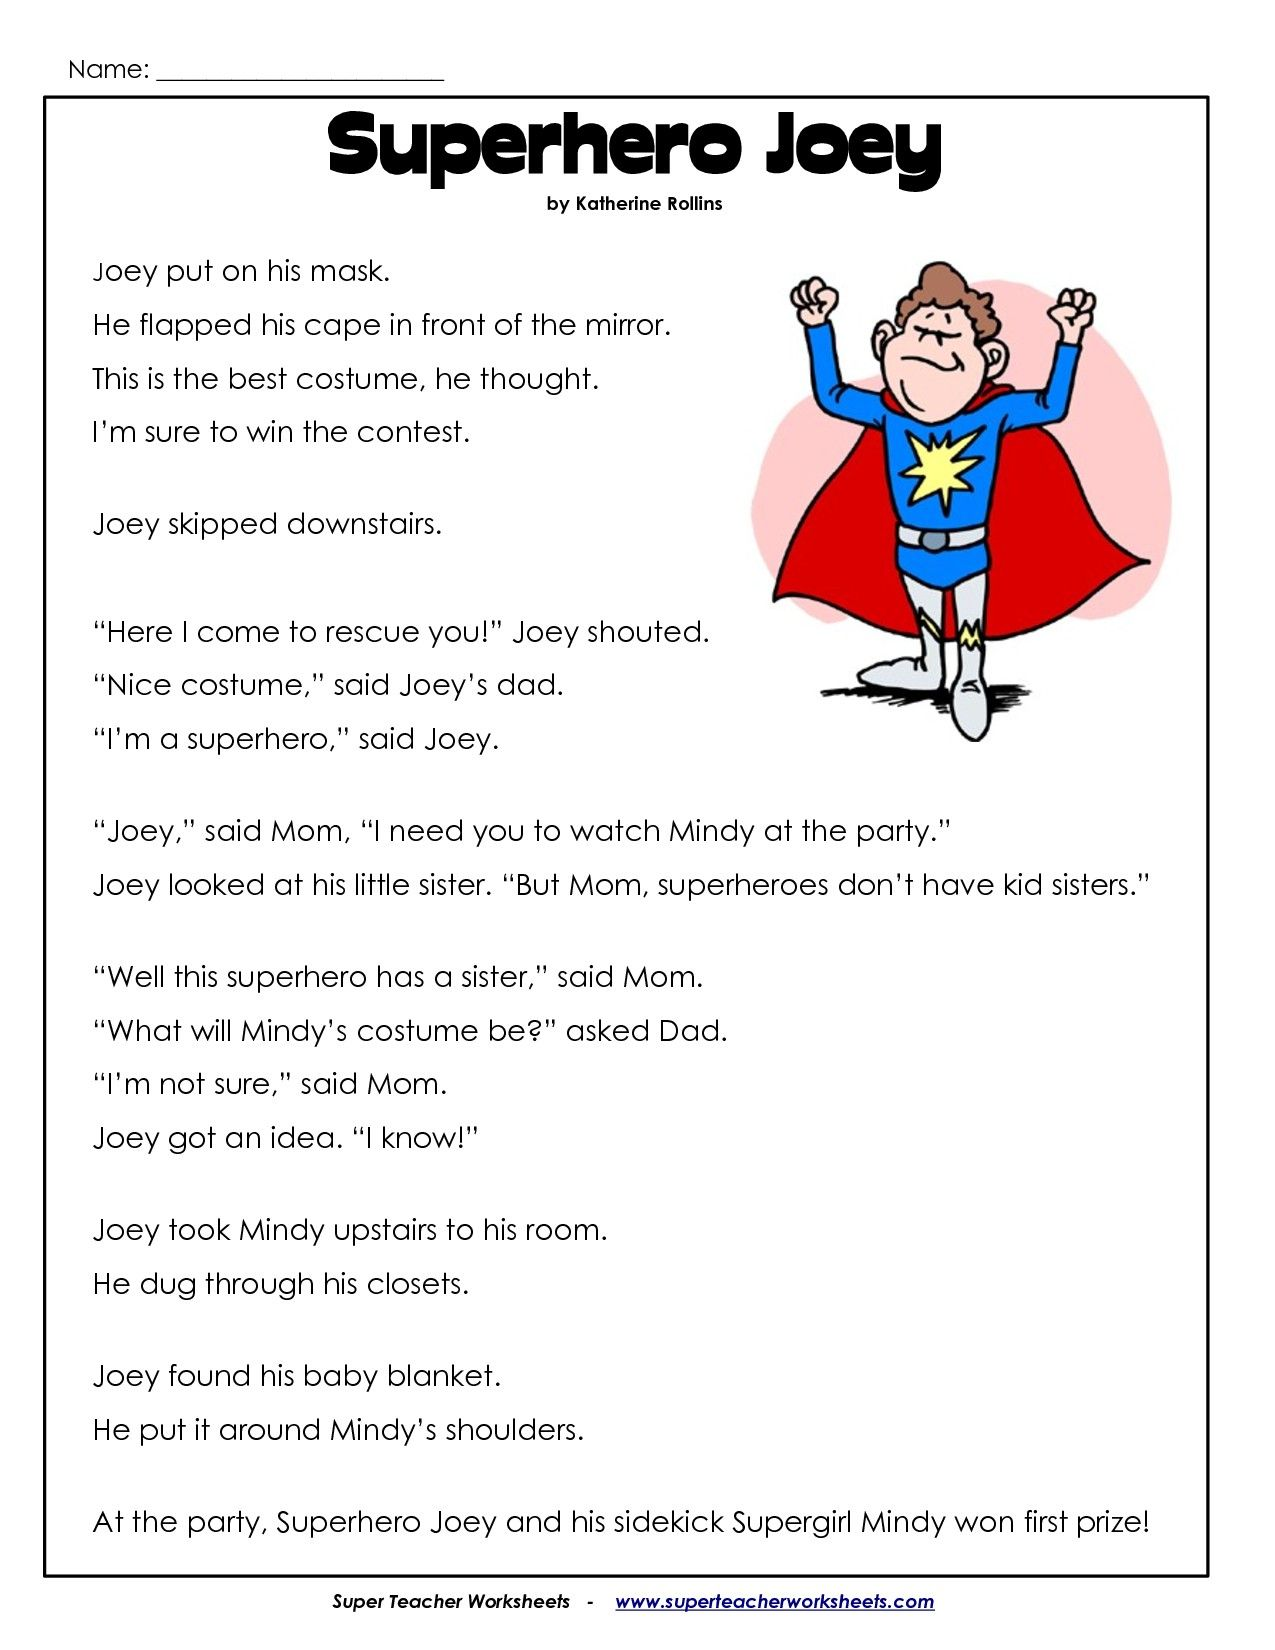 Worksheets Free Reading Comprehension Worksheets 2nd Grade 2nd grade reading comprehension worksheets pdf projects to try comprehension